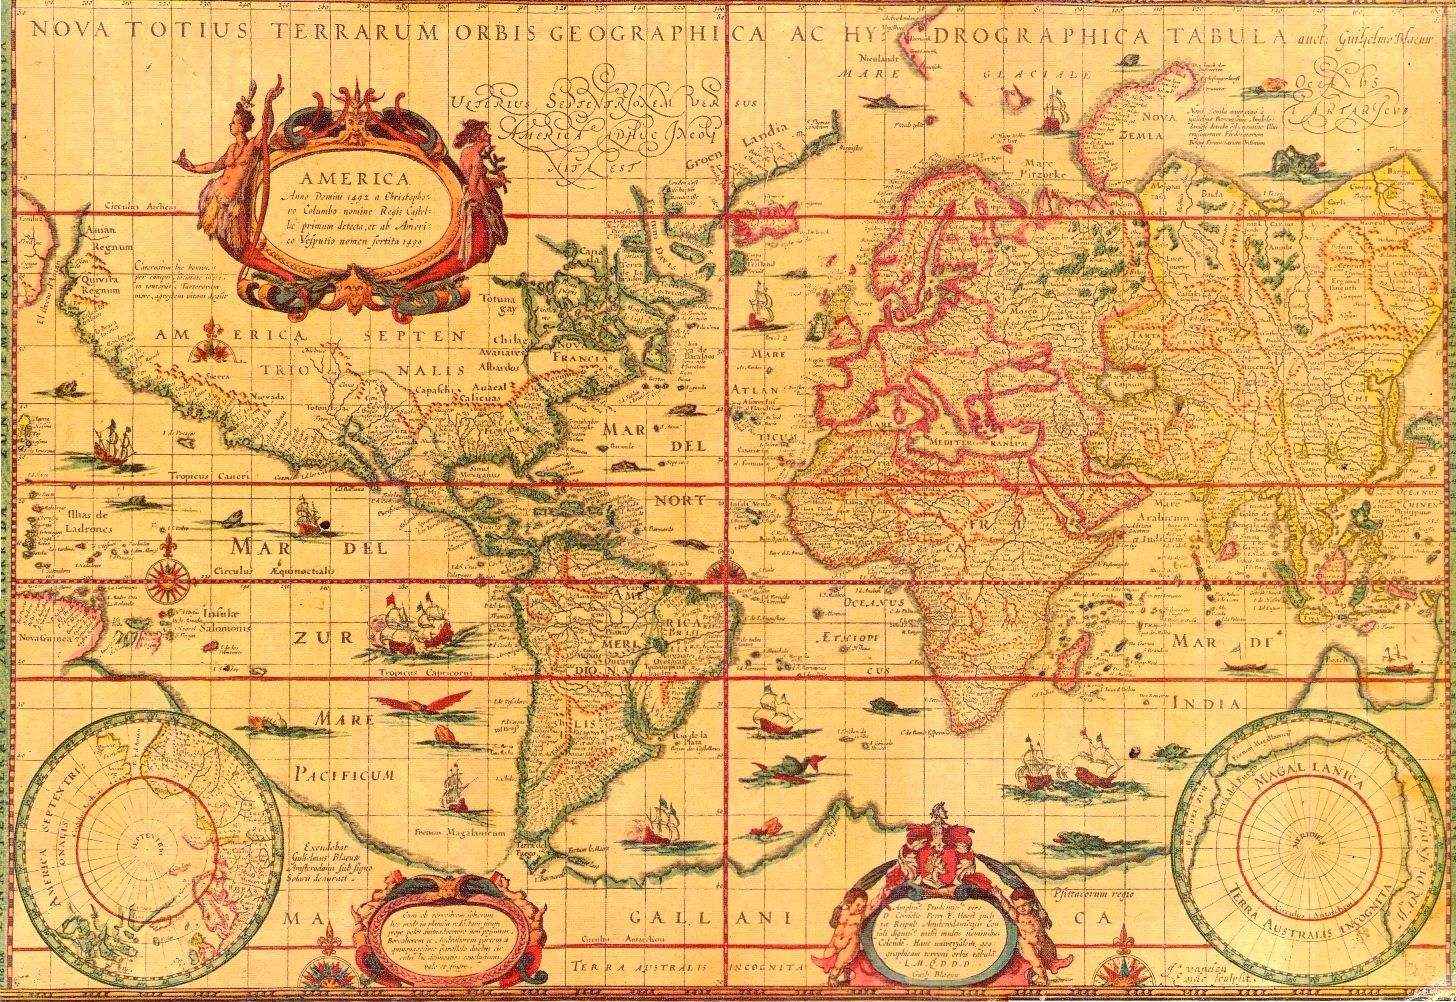 World map published in 1606 by dutch cartographer and atlas maker world map published in 1606 by dutch cartographer and atlas maker willem janszoon blaeu gumiabroncs Gallery